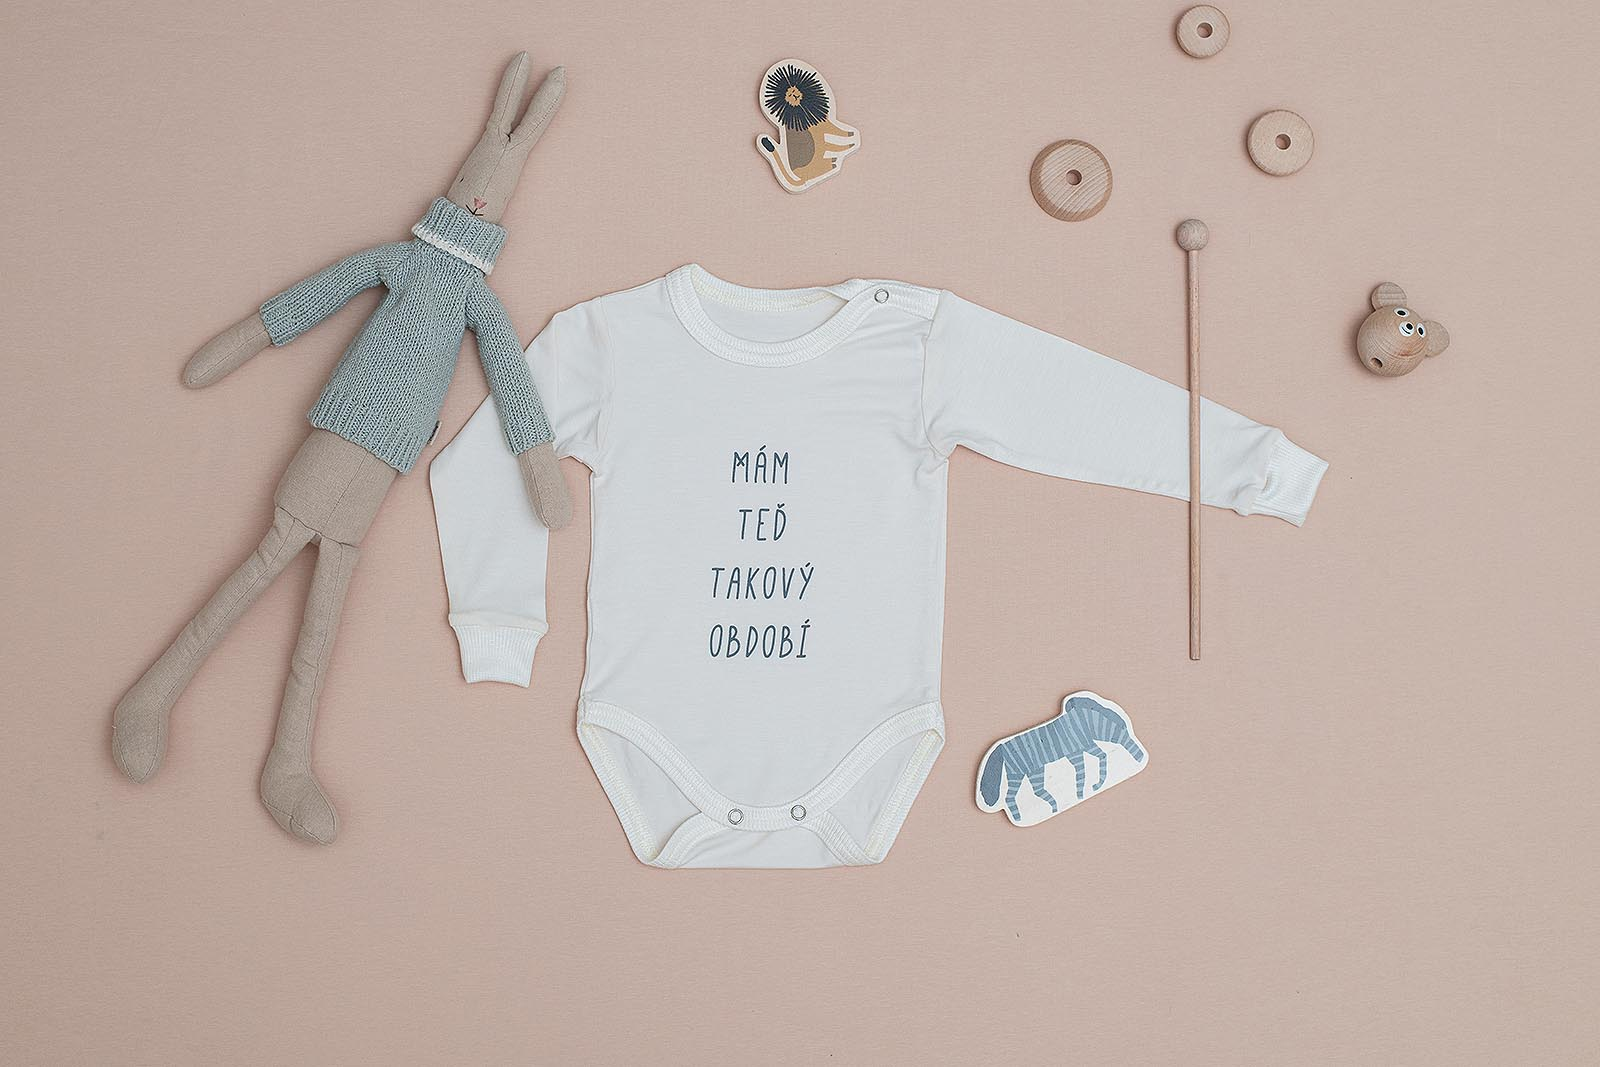 children's outfit Období body off-white